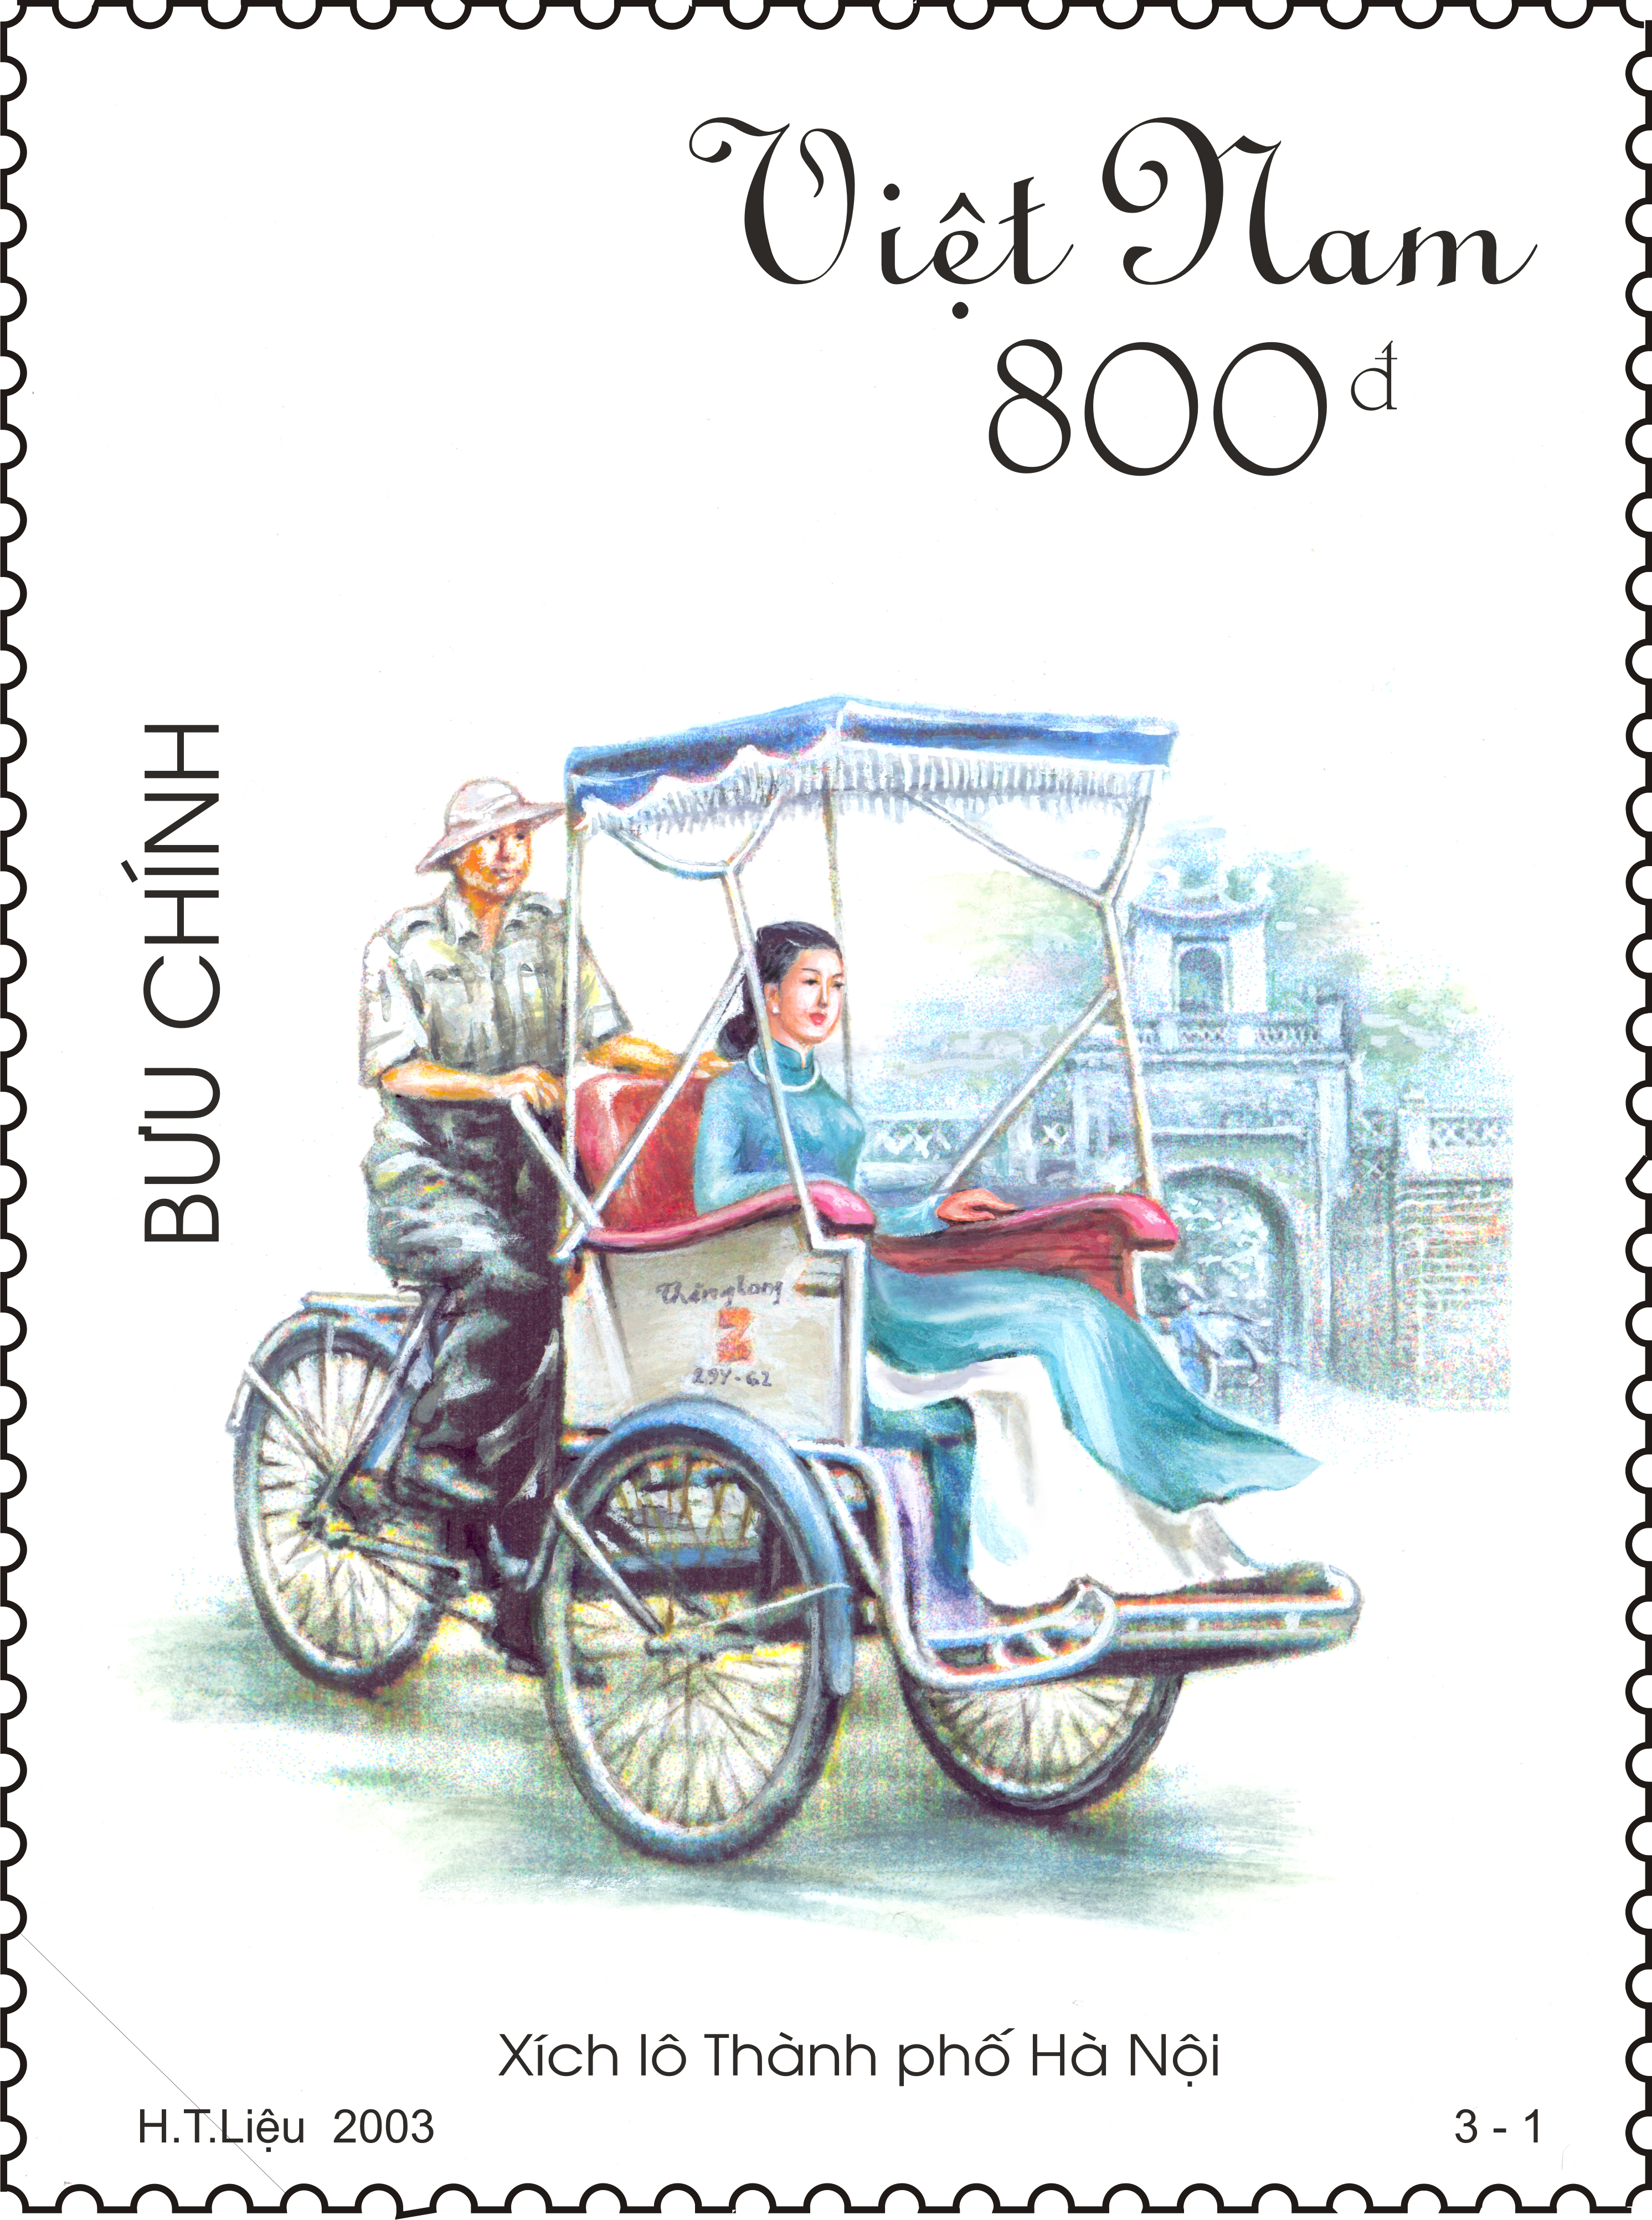 stamp collecting hobby in vietnam hinh 2